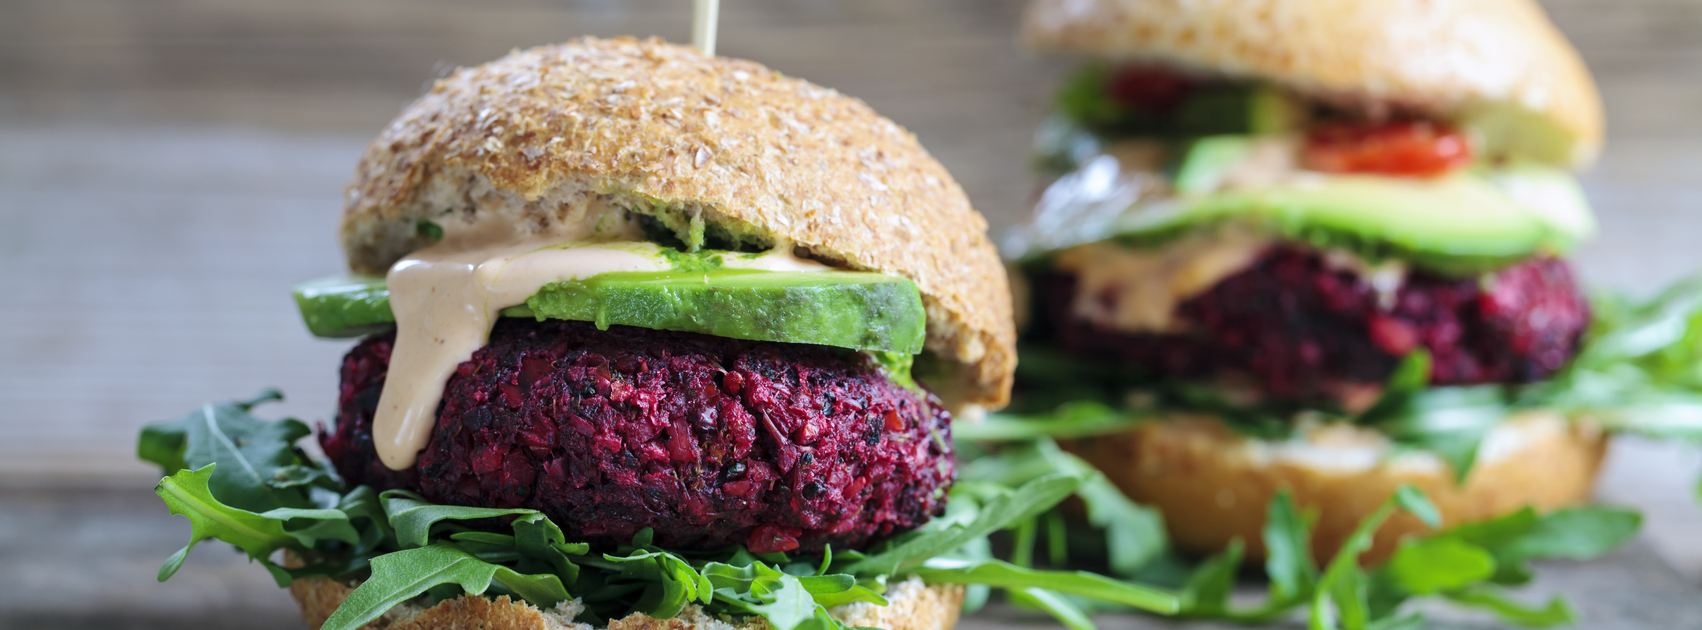 Beet Avacado Burger